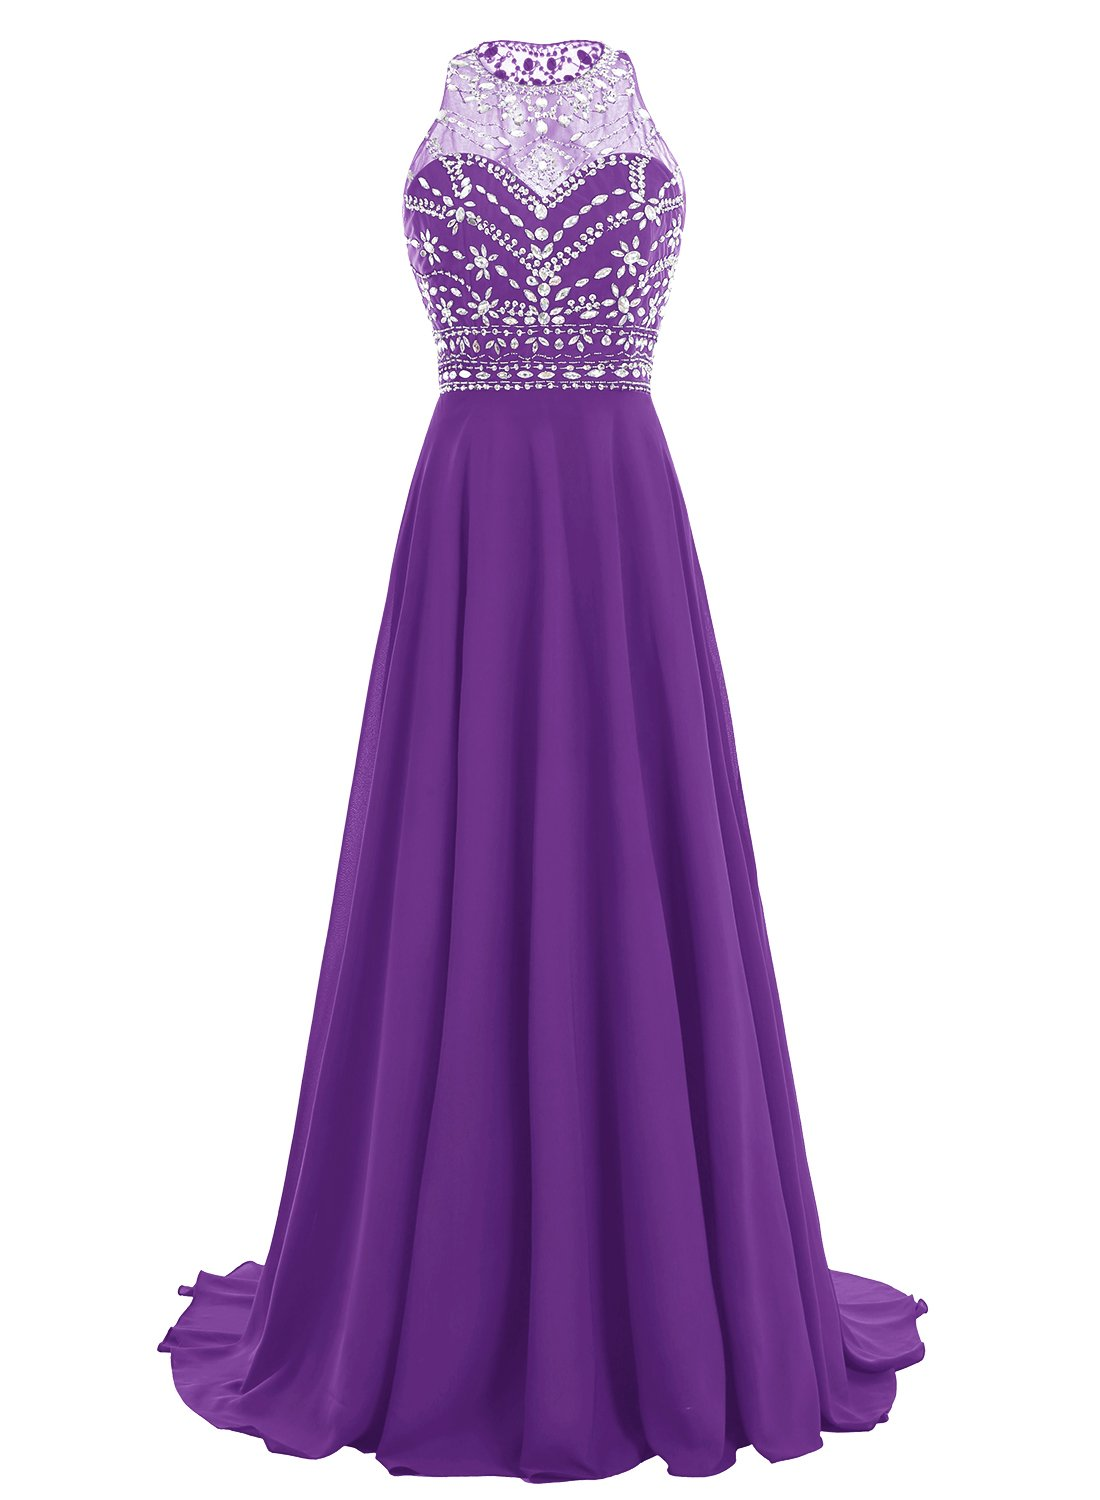 bbonlinedress Women Long Chiffon Beadings Scoop Prom Party Dresses Evening Gown Purple 16 by Bbonlinedress